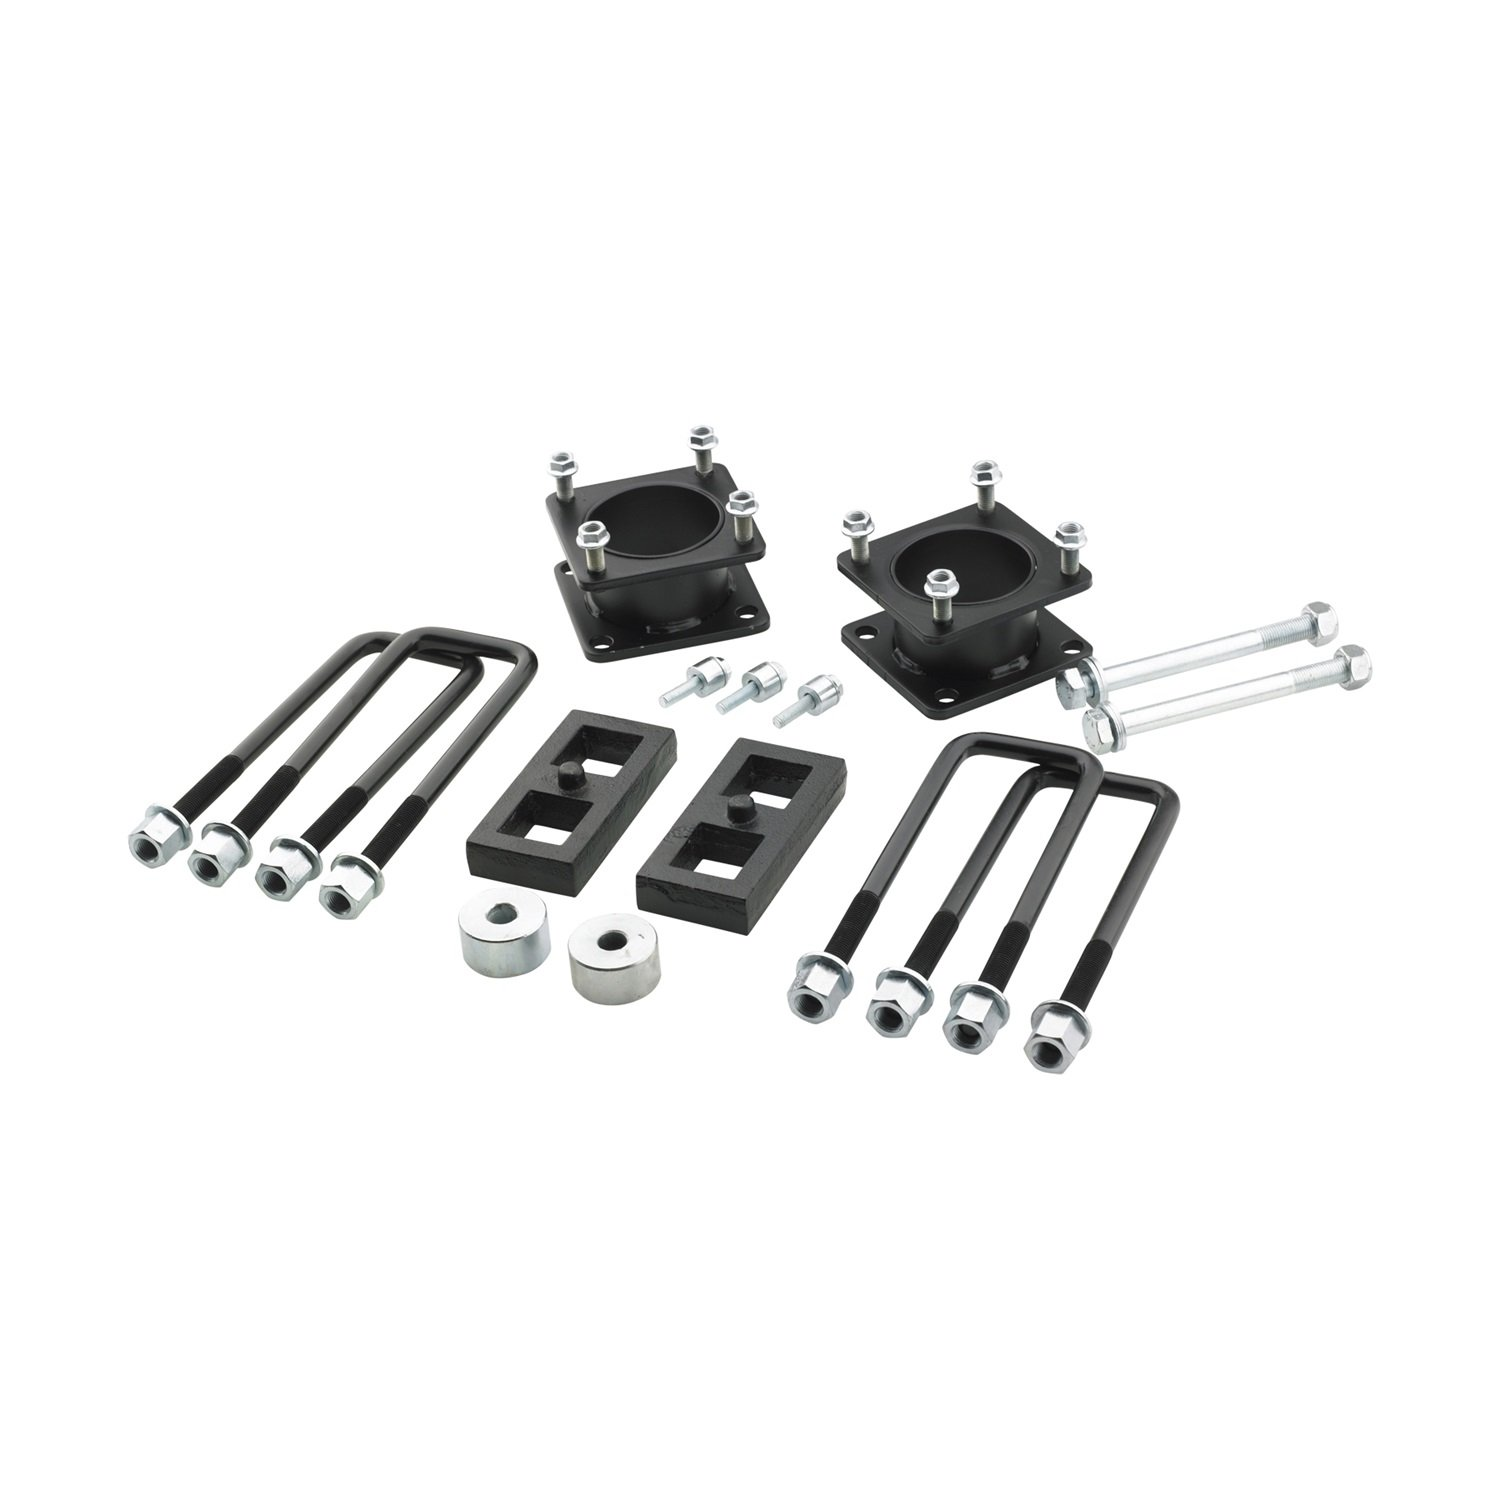 Pro Comp 65225K 3.0'' Front 1.0'' Rear Suspension Lift Kit for Tundra (Non-TRD Series)